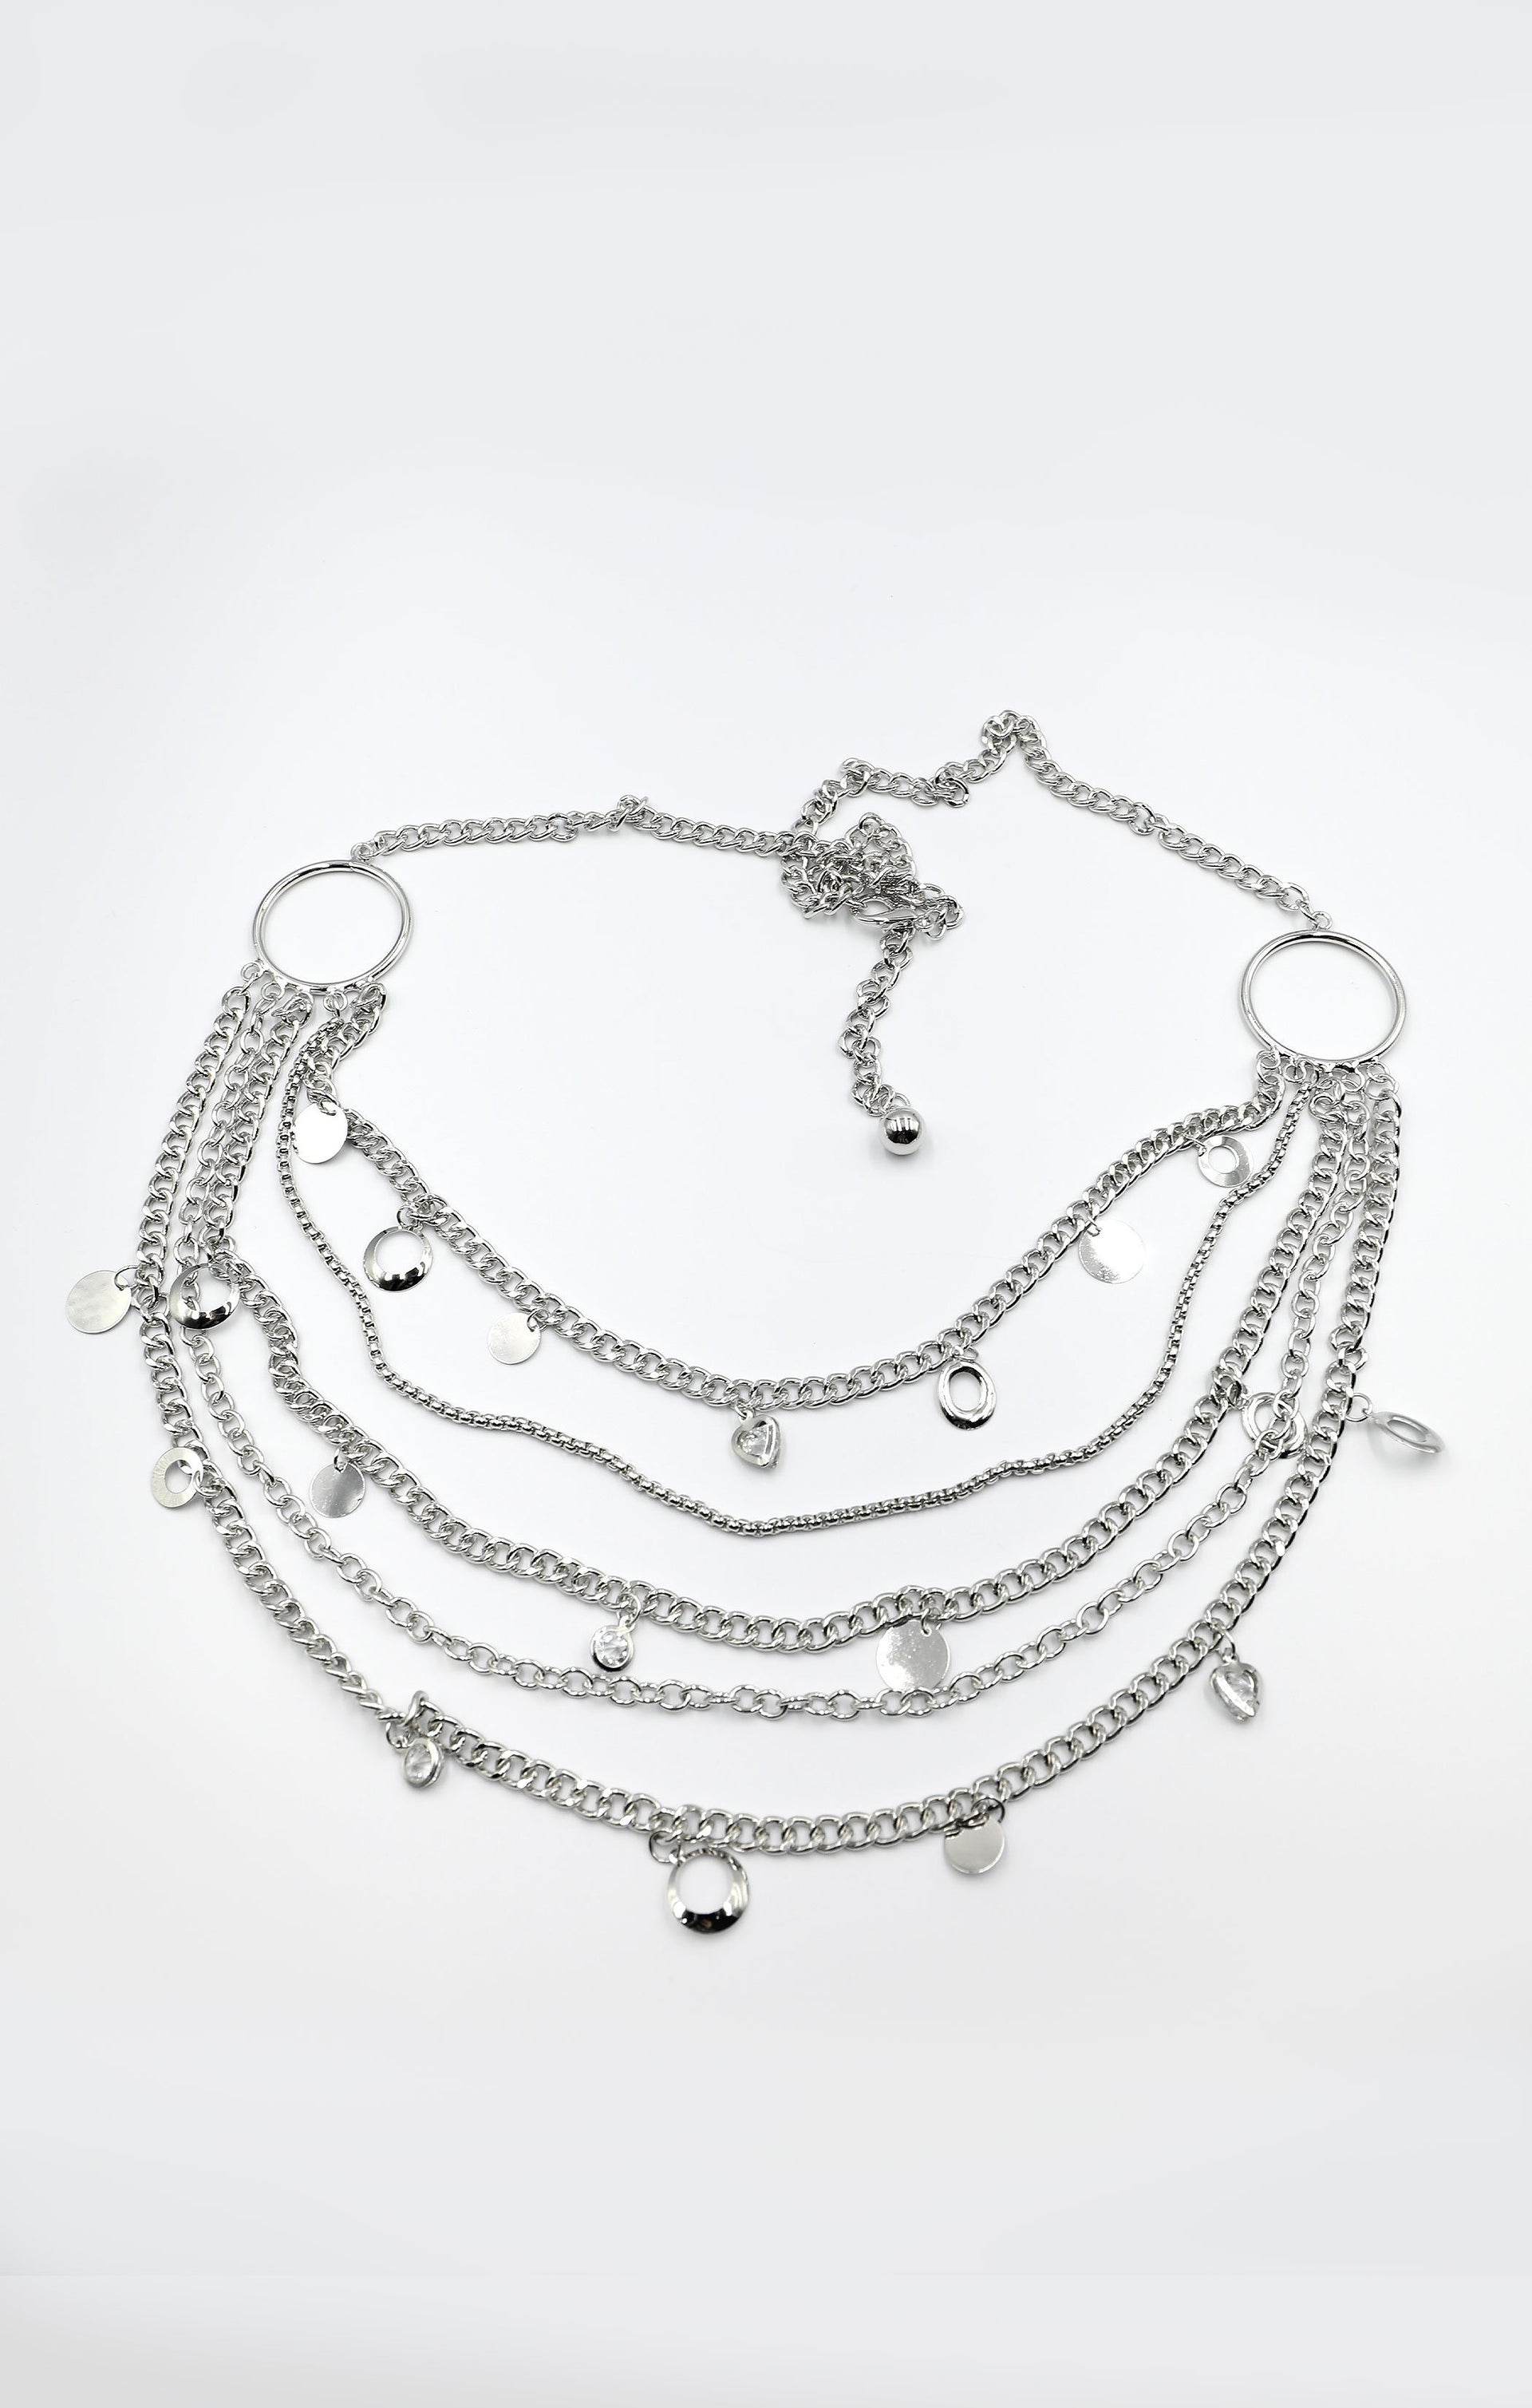 Silver Multilayer Drop Charm Belly Chain Belt - Cleo